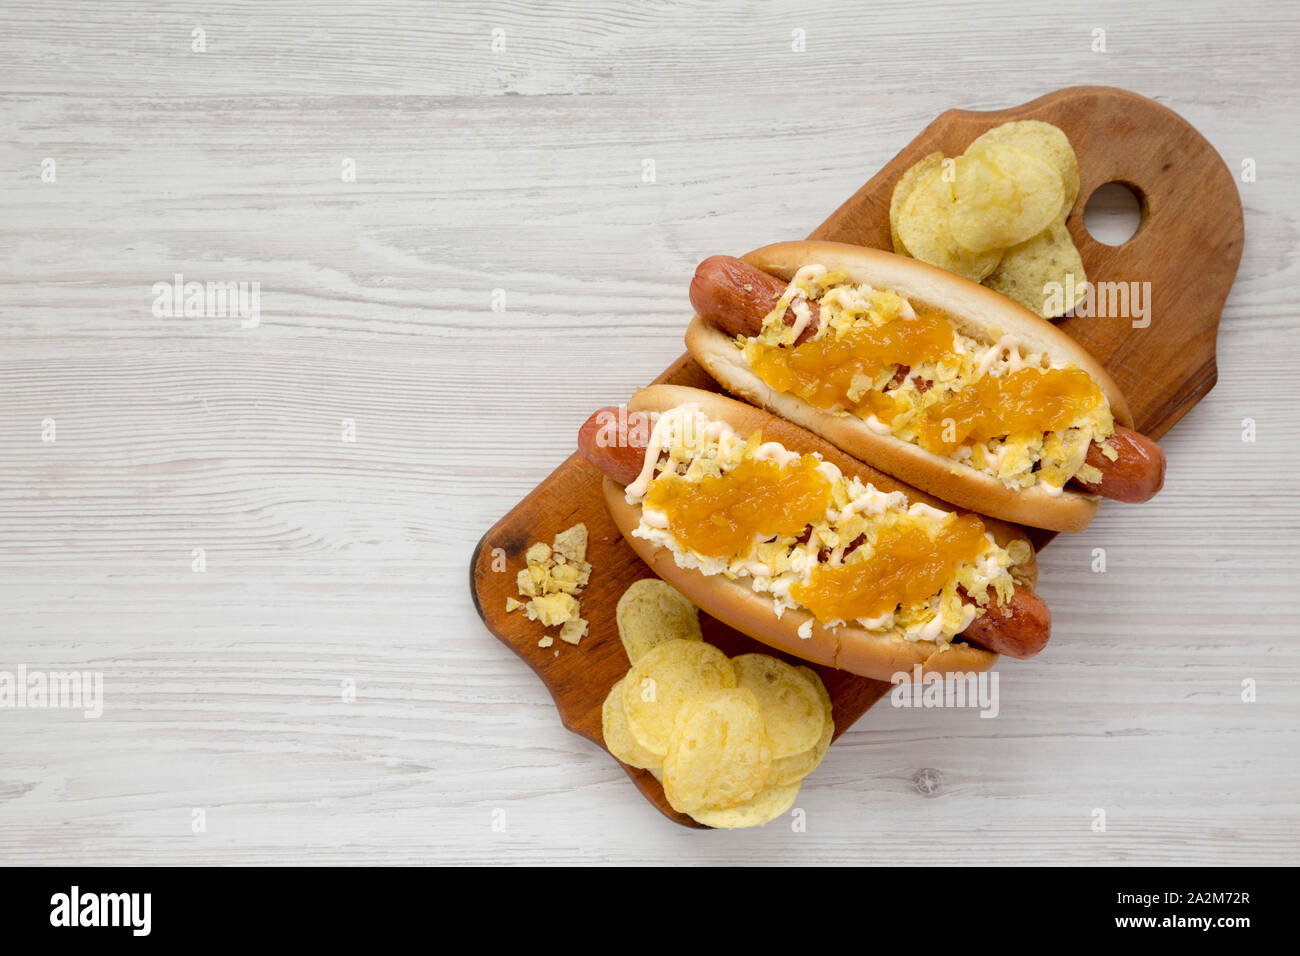 Homemade colombian hot dogs with pineapple sauce, chips and mayo ketchup on a rustic wooden board on a white wooden background, top view. Overhead, fl Stock Photo